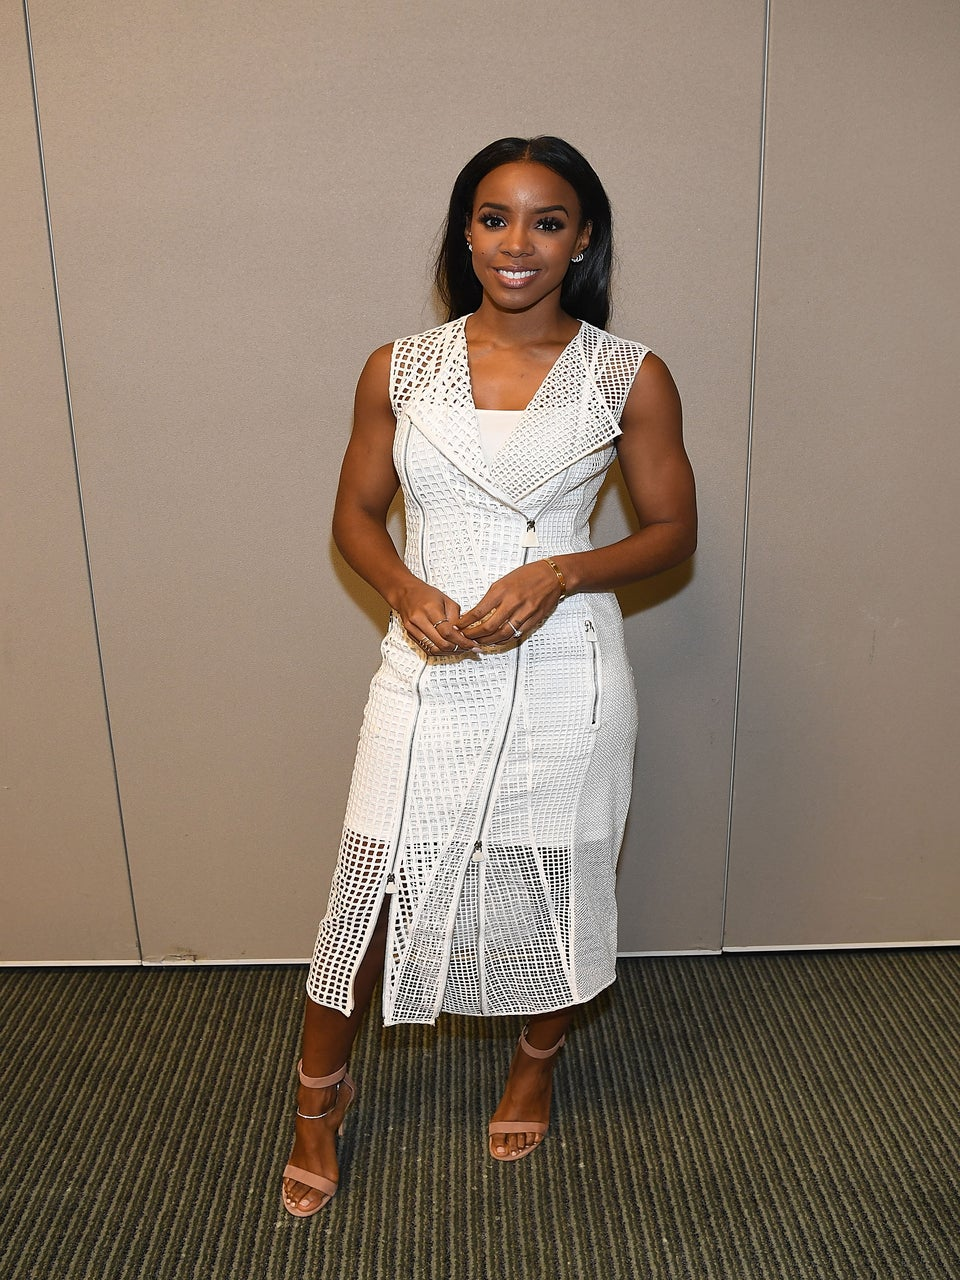 Look of the Day: Get Into Kelly Rowland's Super Chic Embroidered Dress